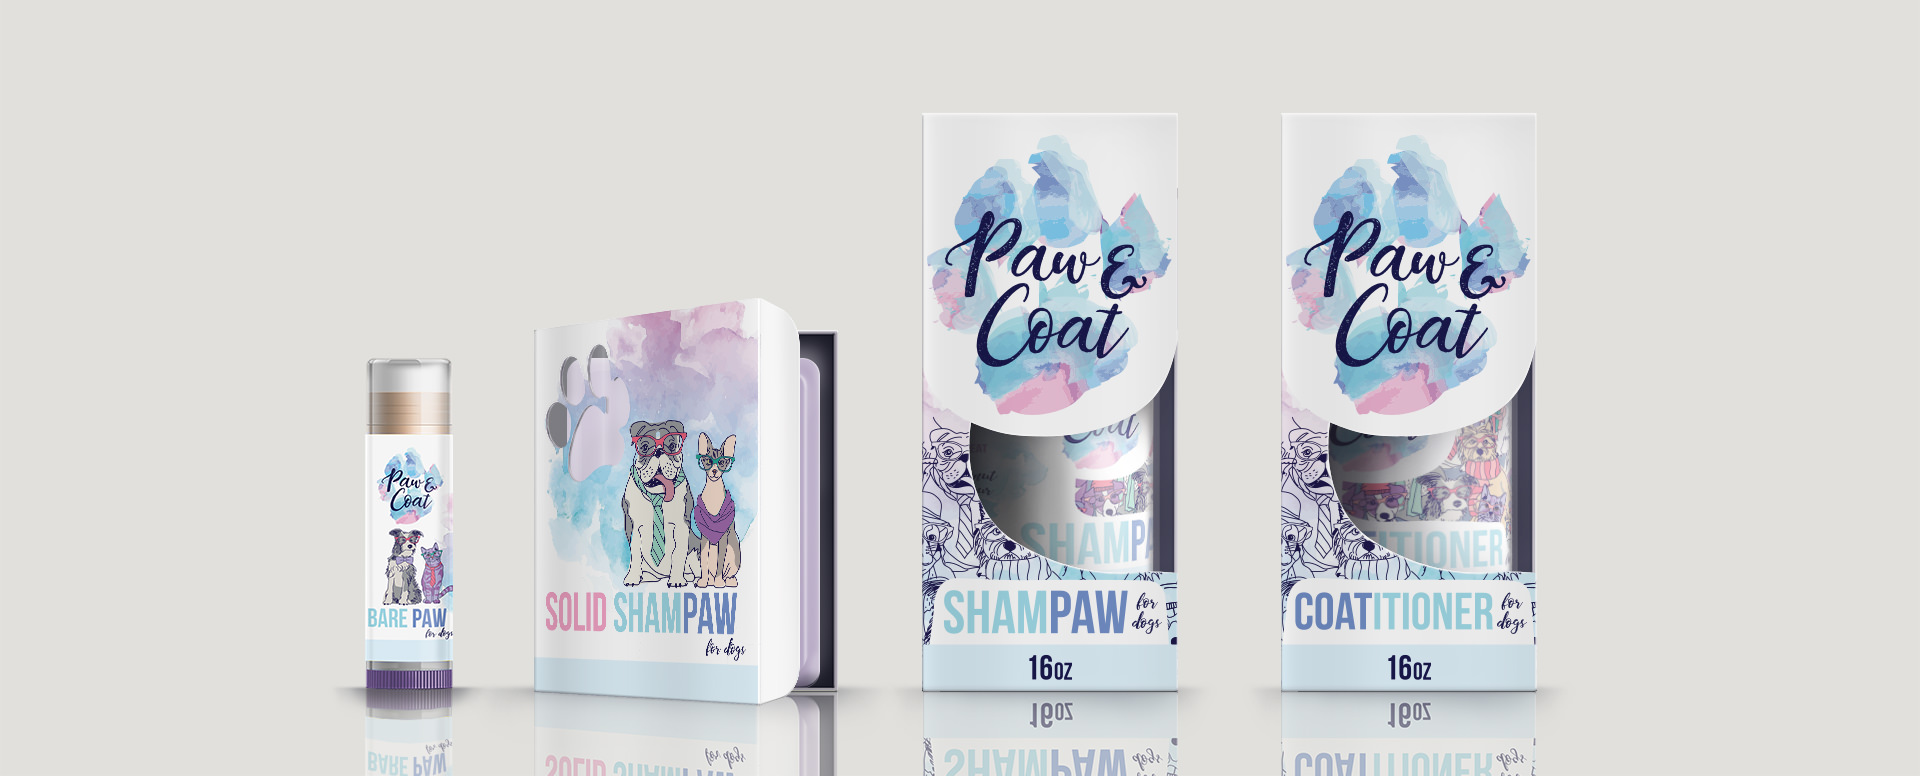 Paw&Coat brand identity and packaging skus